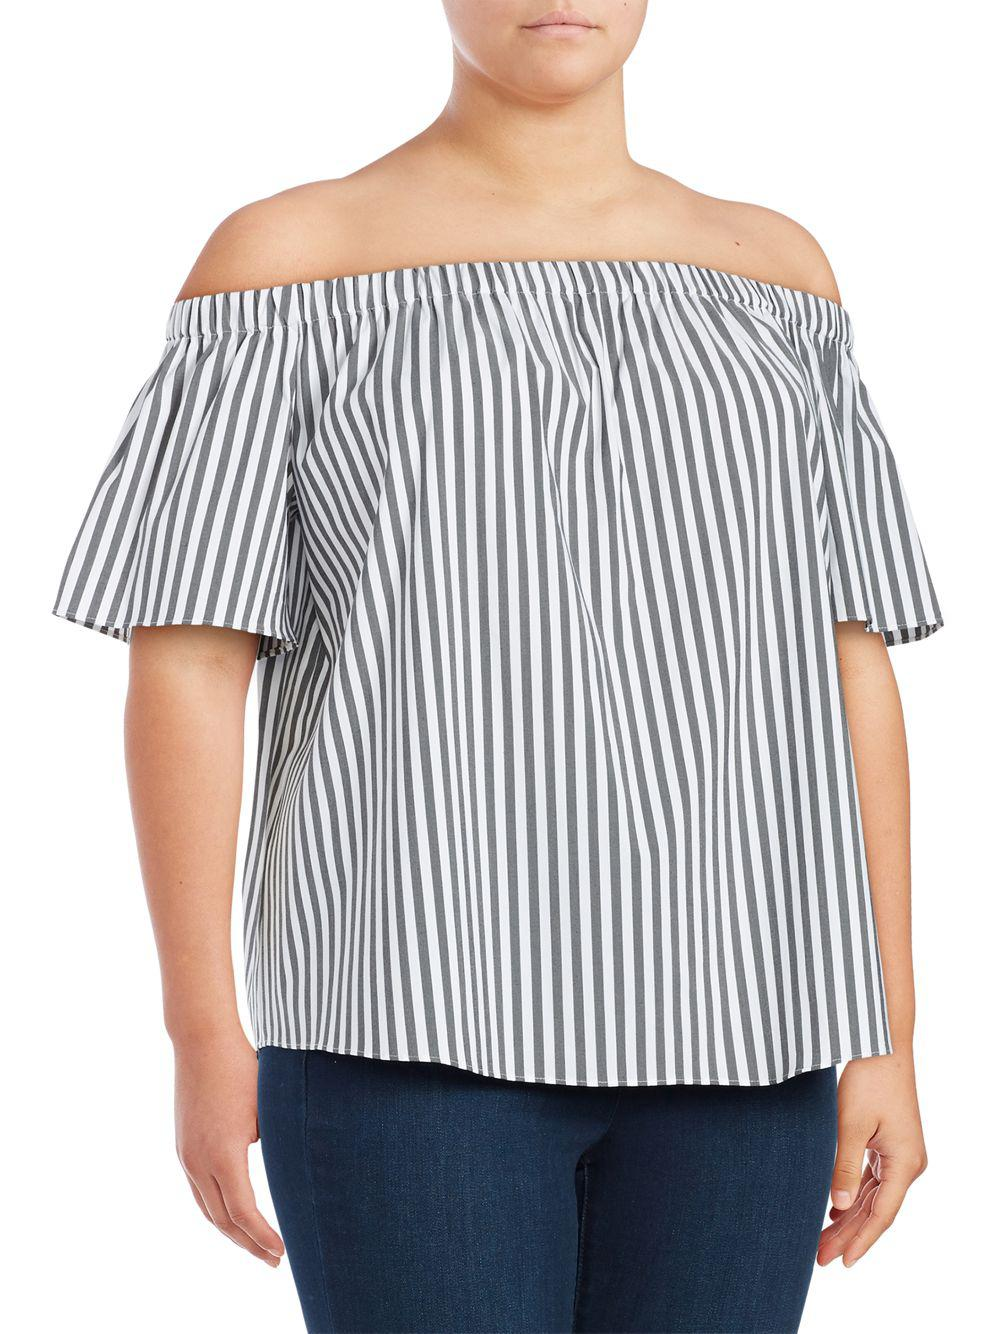 7df28d15589 Lyst - Vince Camuto Plus Striped Off-the-shoulder Top in Gray - Save 29%